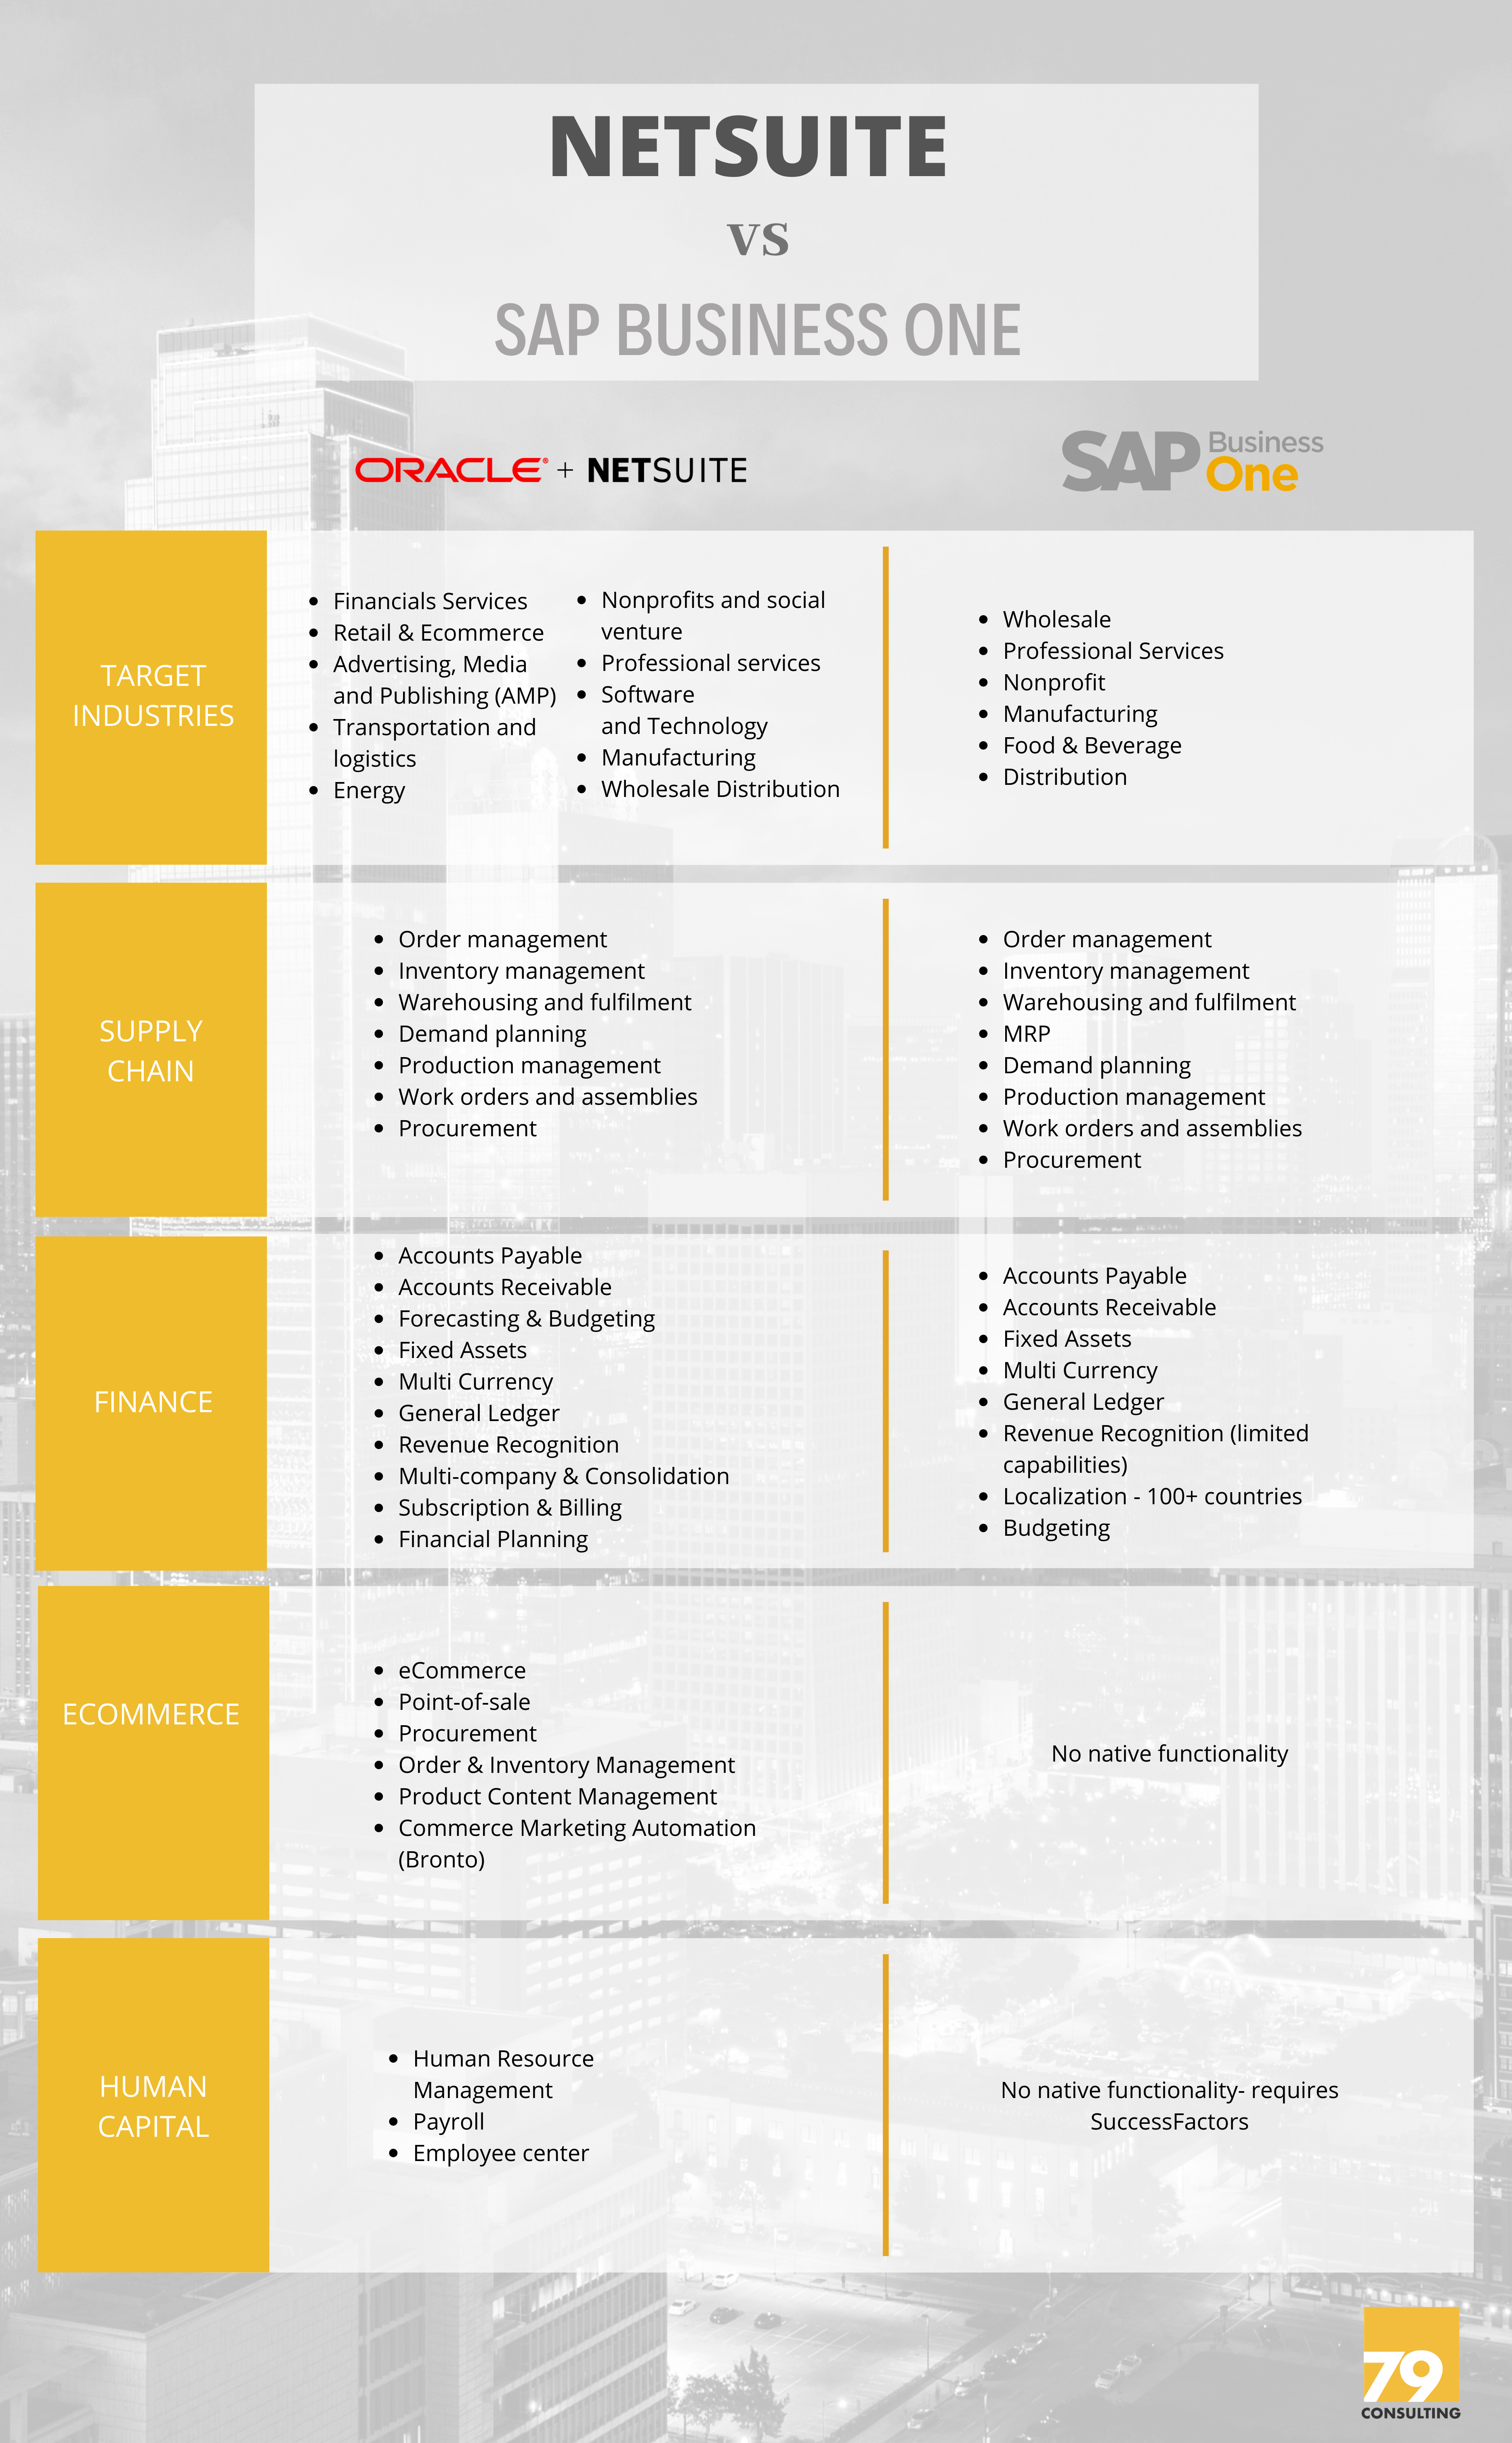 NetSuite vs SAP Business One 79Consulting ERP